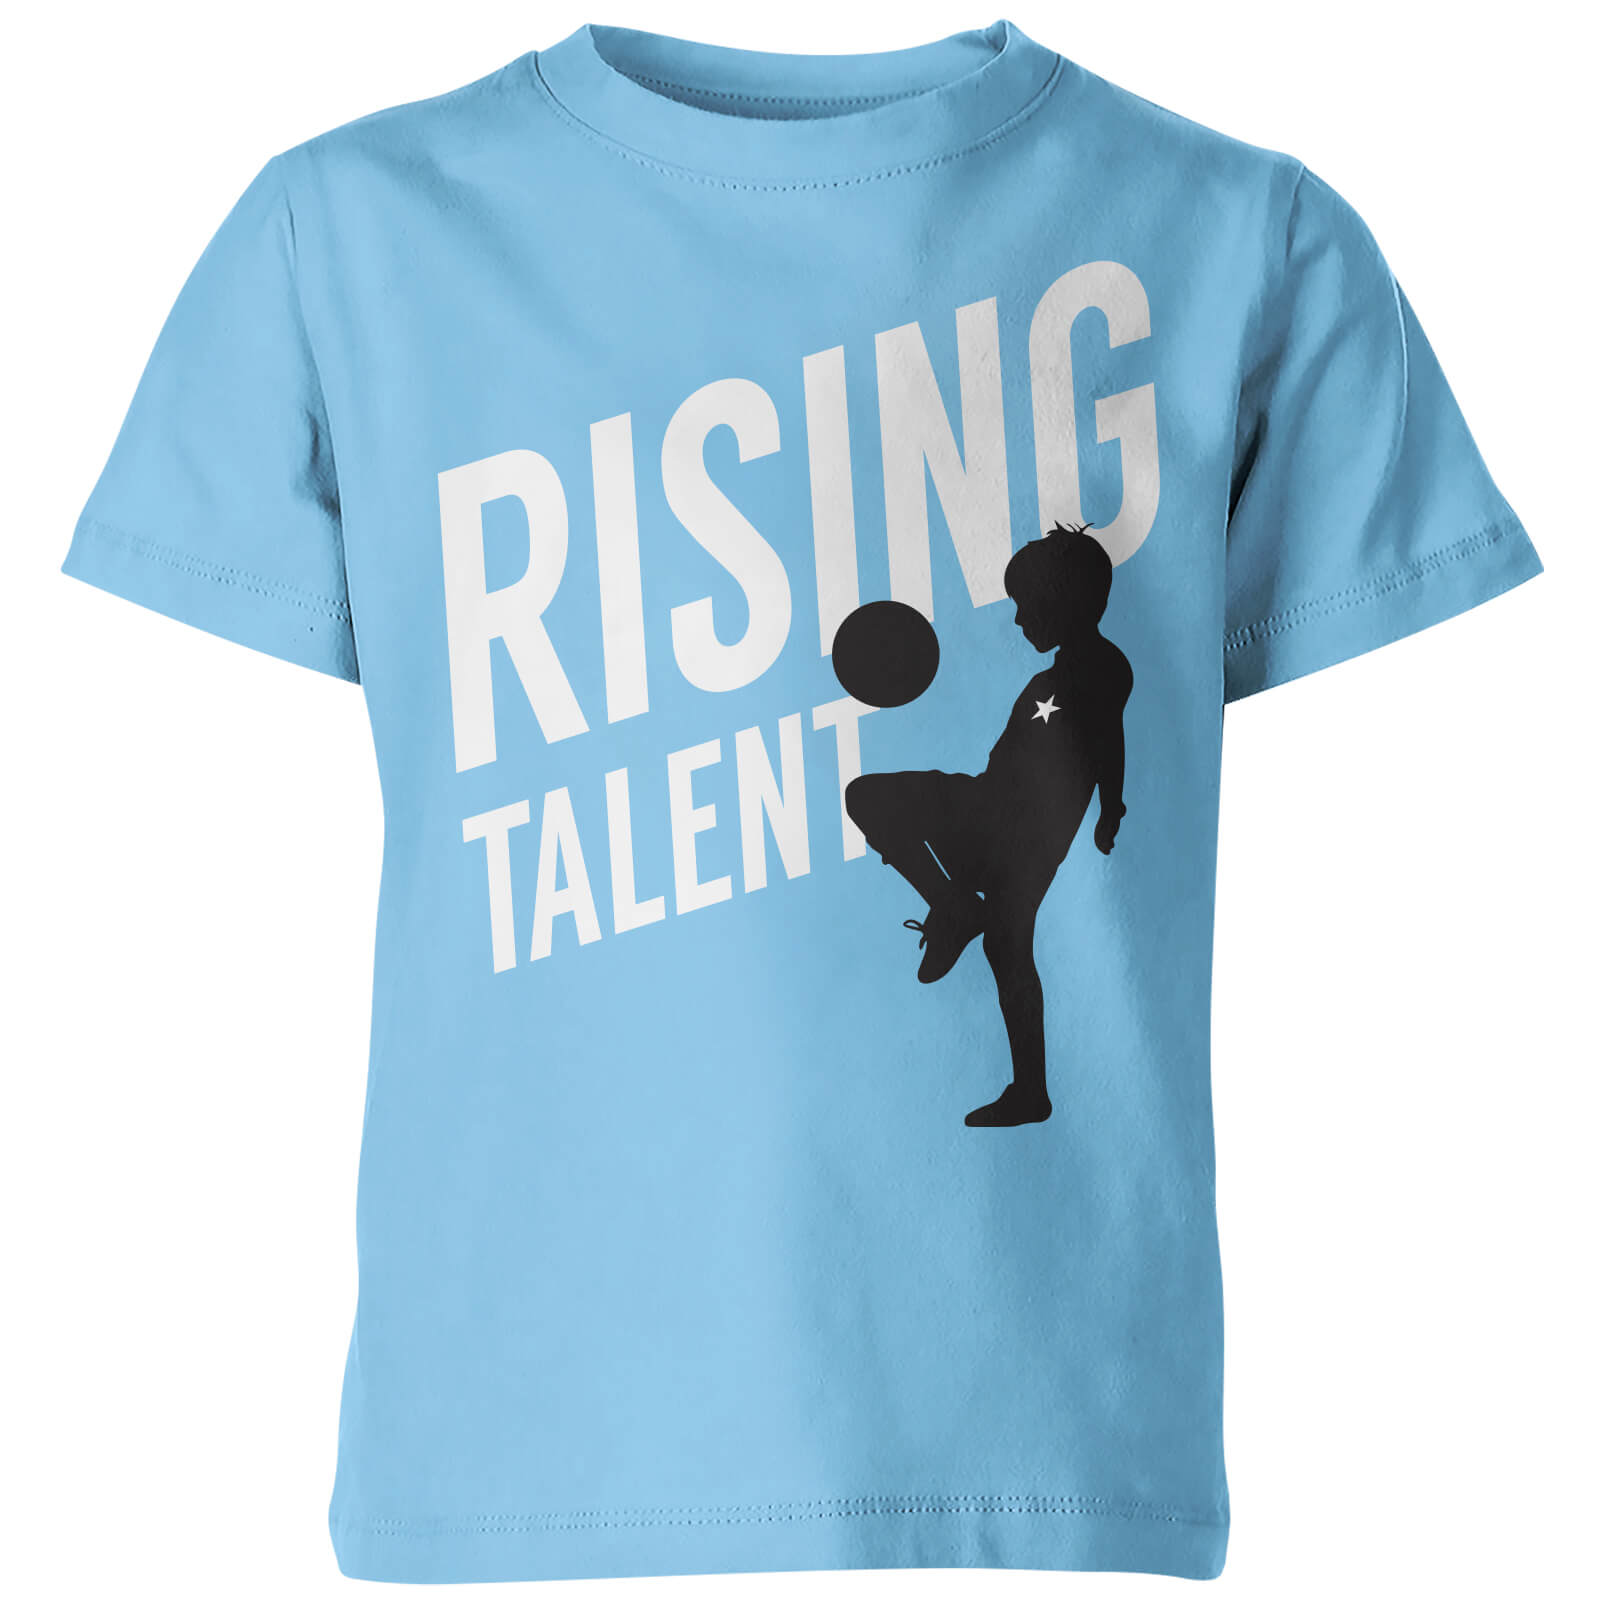 Rising Talent Kid